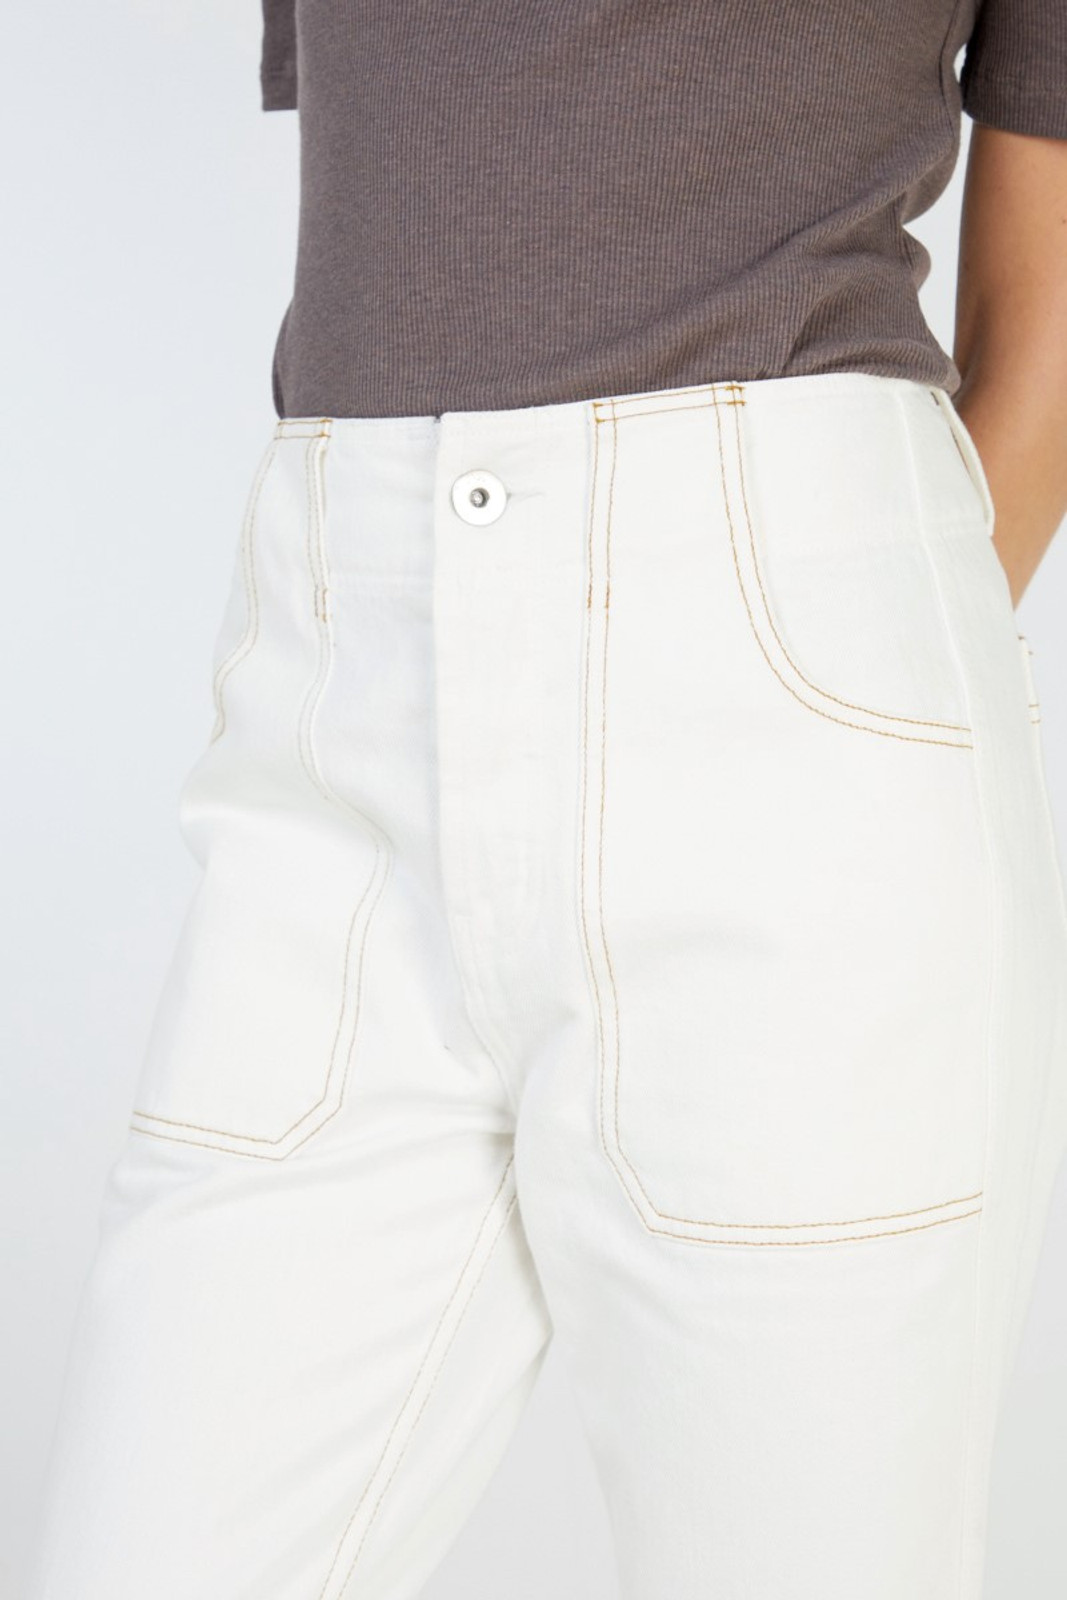 Elka Collective Coastal Jean White  6